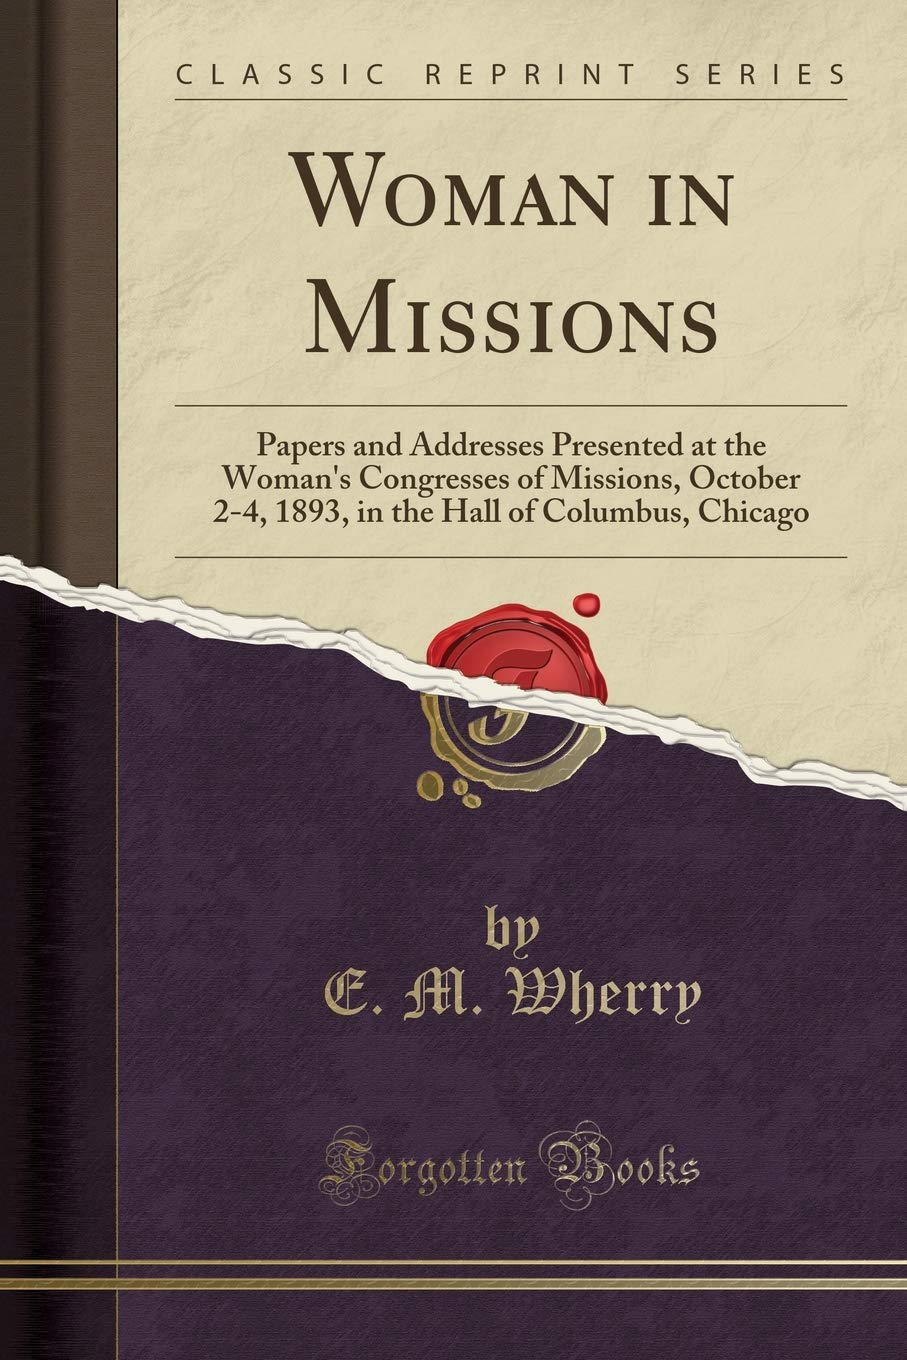 Download Woman in Missions: Papers and Addresses Presented at the Woman's Congresses of Missions, October 2-4, 1893, in the Hall of Columbus, Chicago (Classic Reprint) PDF